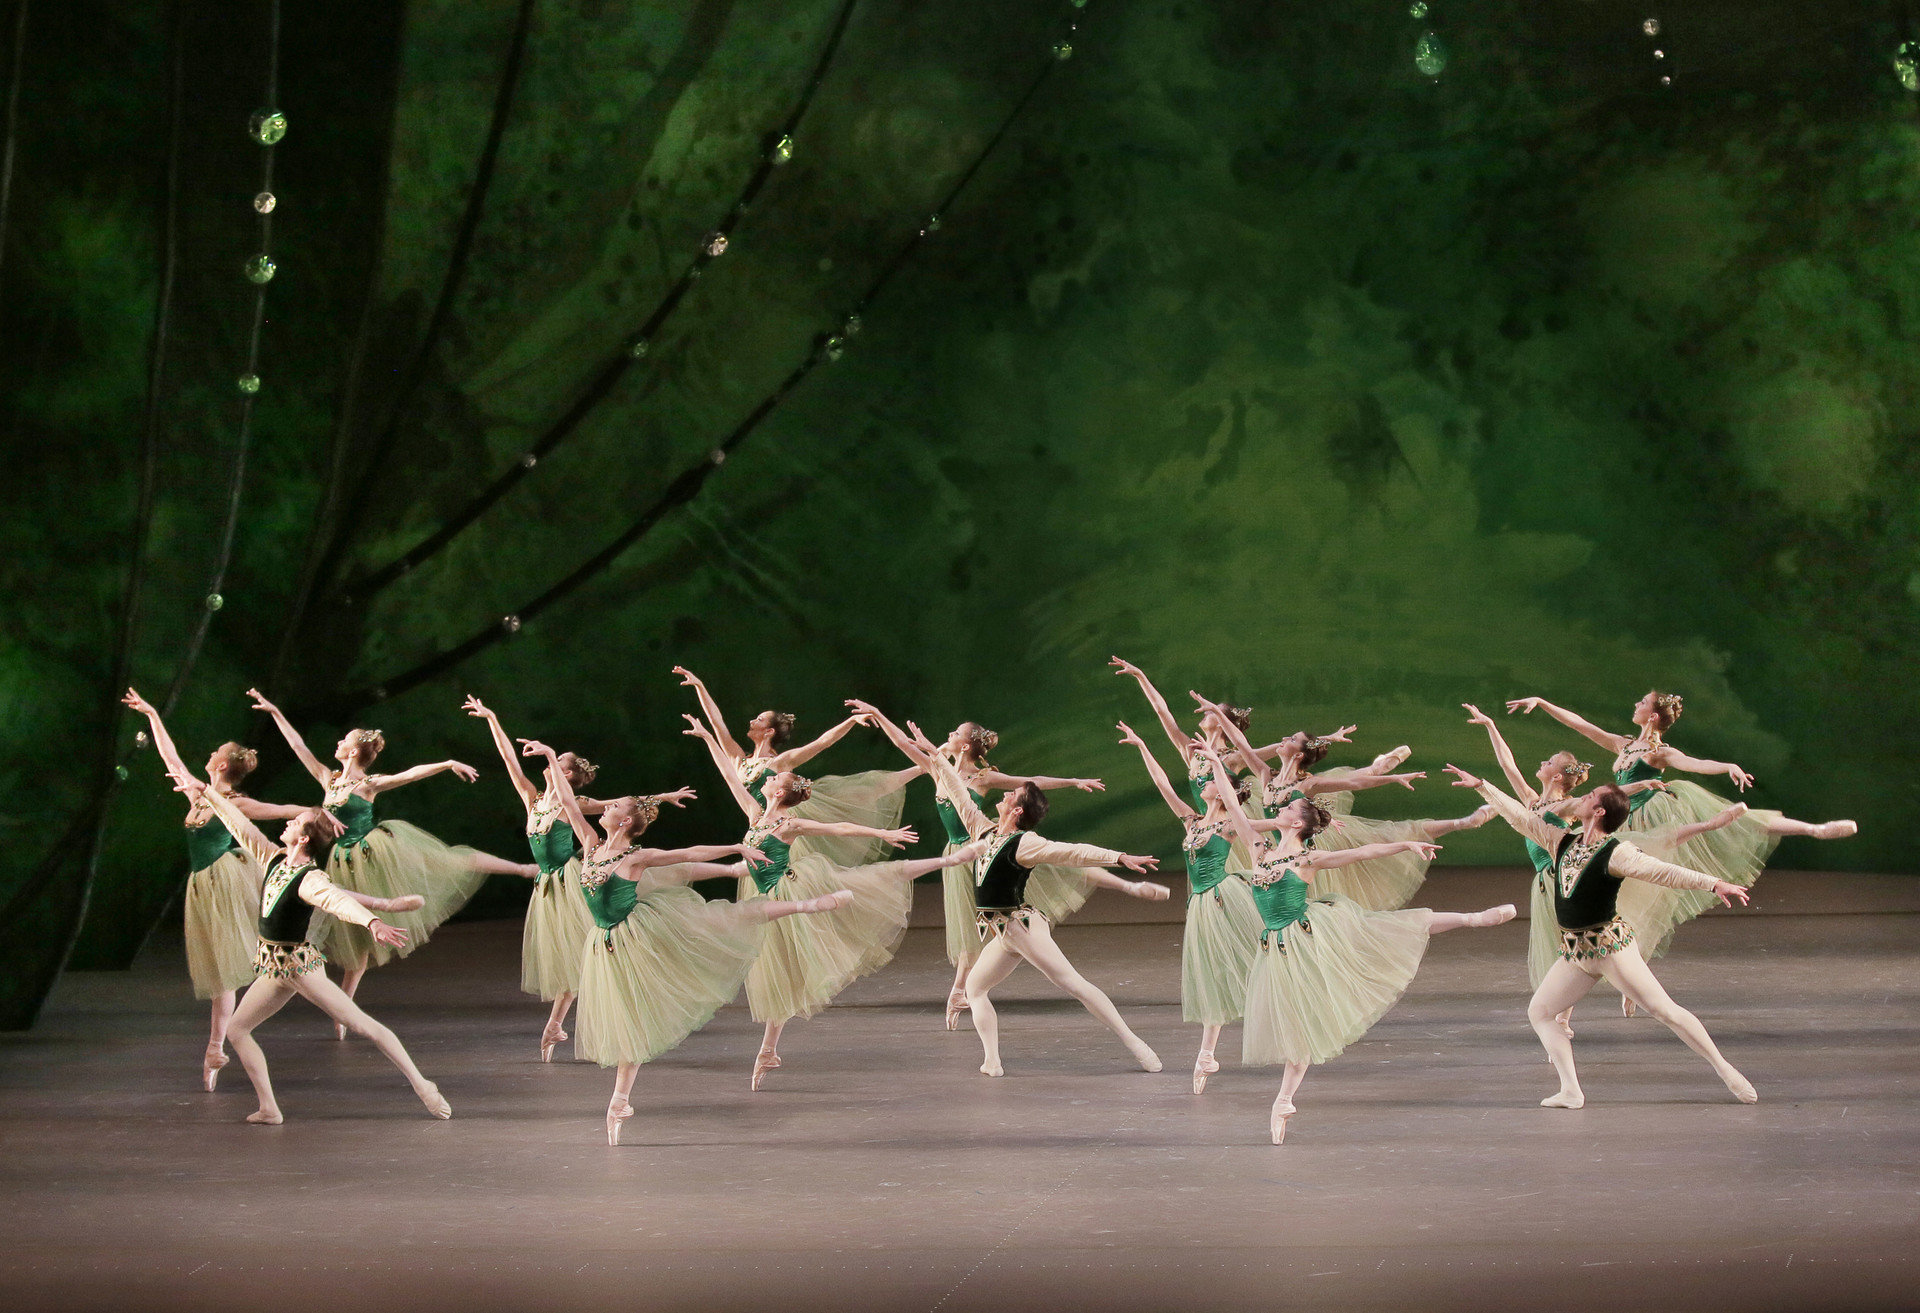 art Arts + Culture ballerinas ballet dance dancers dancing people performance performers show stage theater theatre Trip Ideas performing arts sports team sport Entertainment performance art event